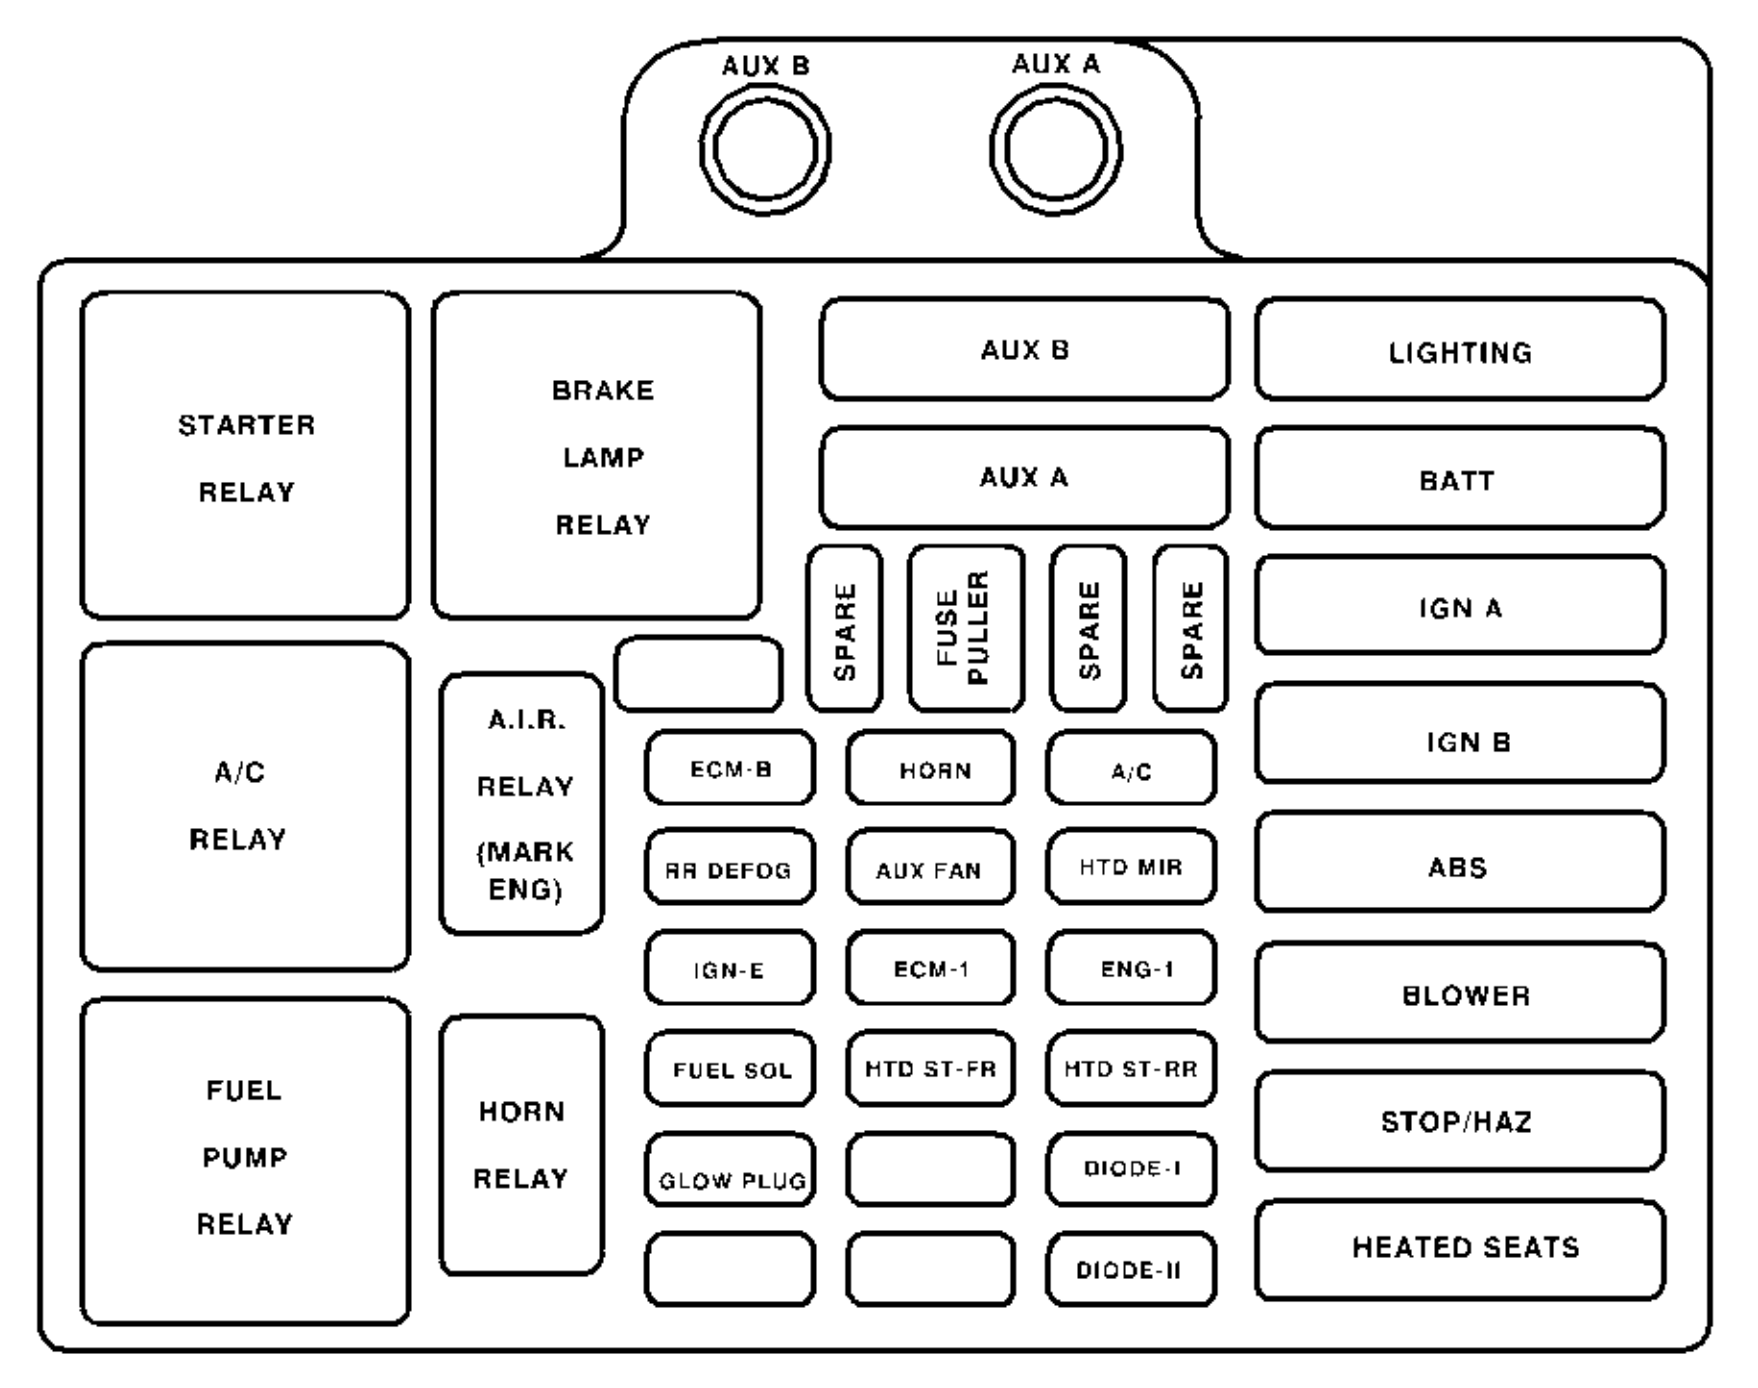 hight resolution of 2005 s10 fuse box extended wiring diagram 2005 s10 fuse box